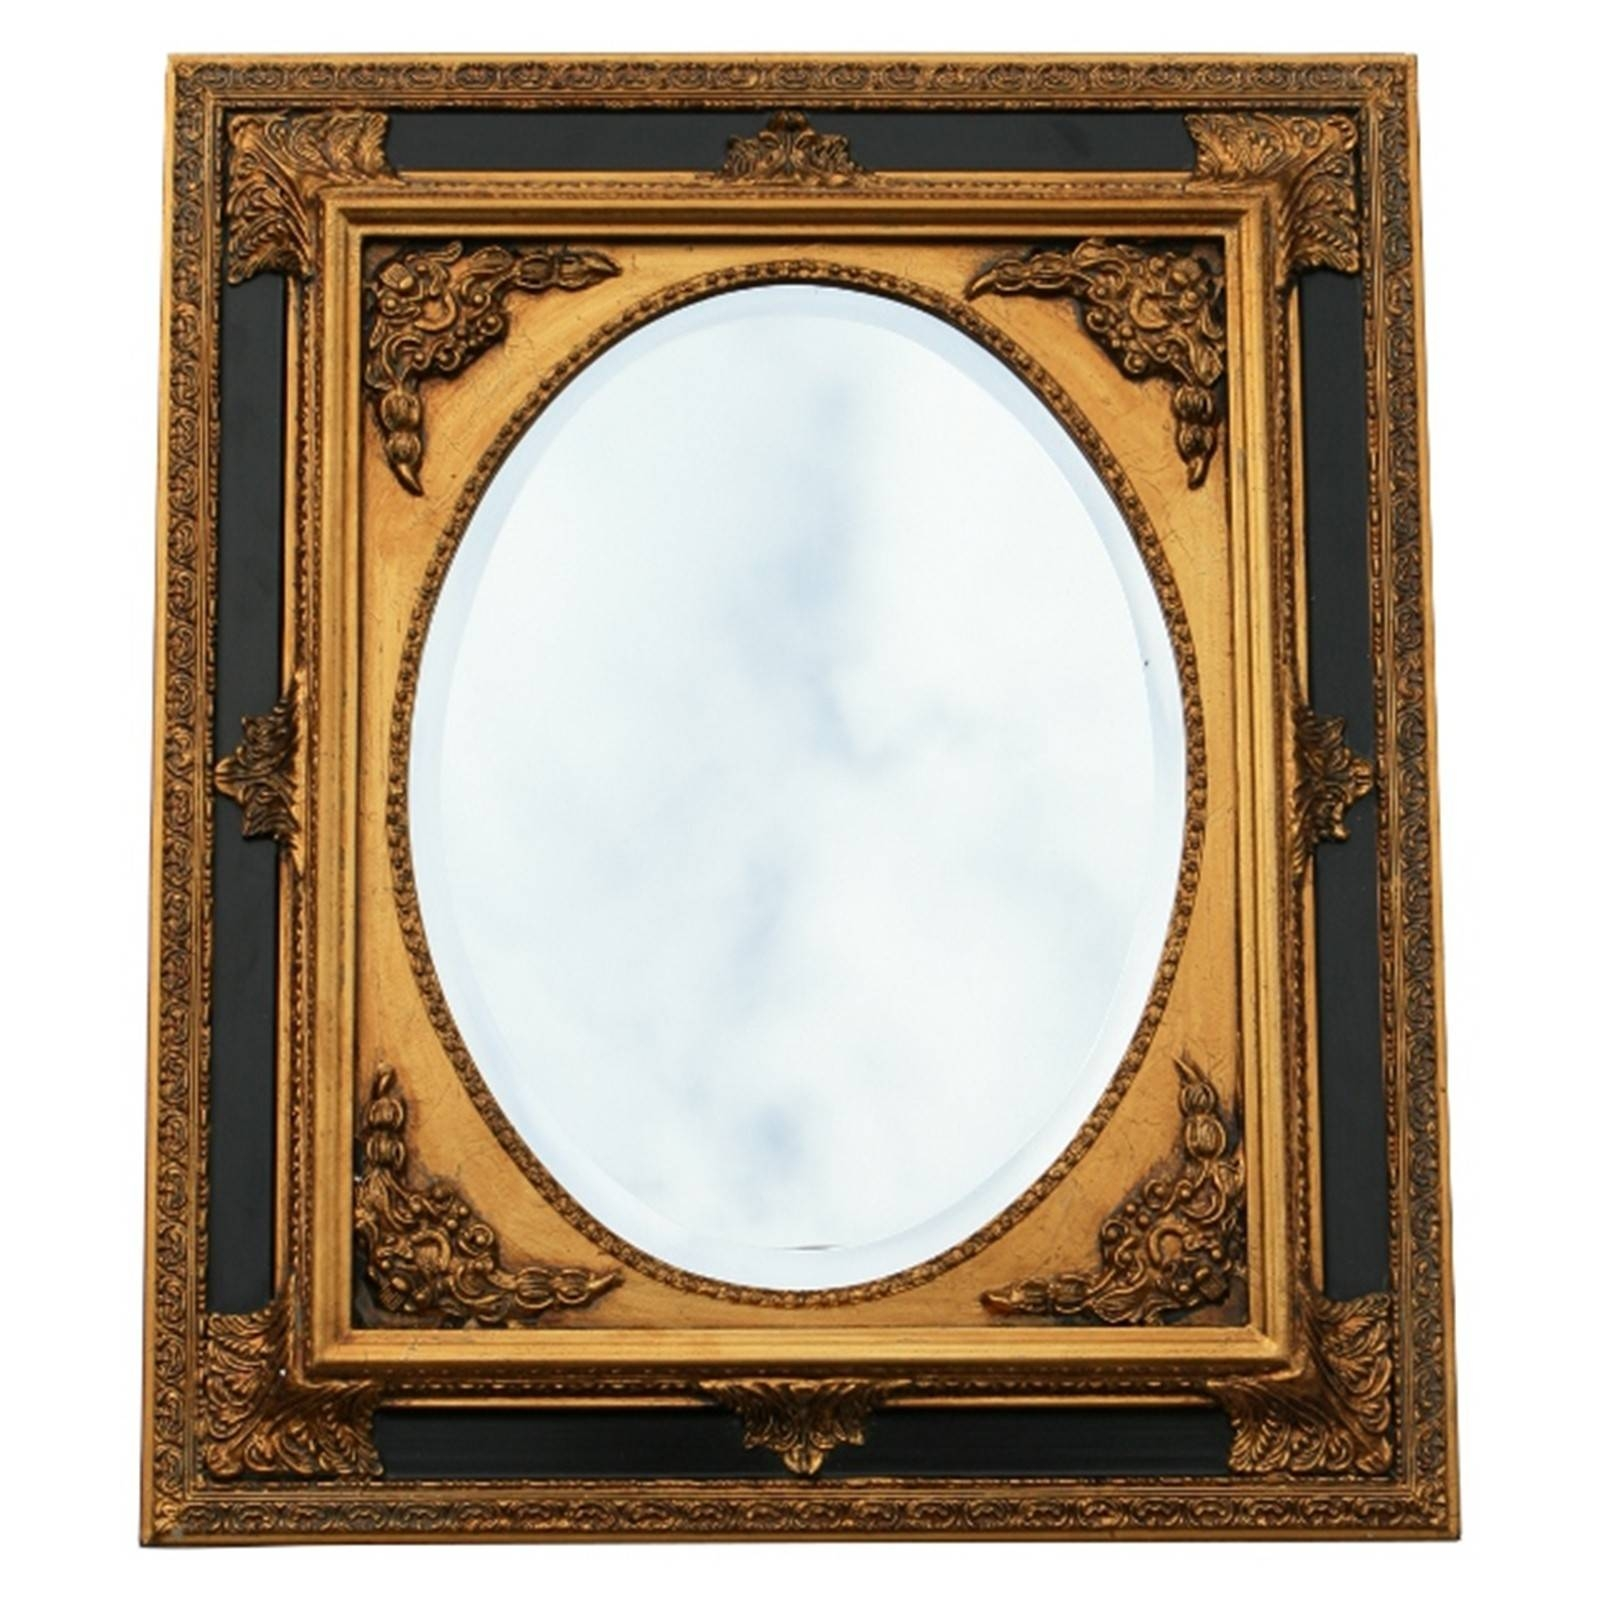 Baroque Wall Mirror Oval Ornate Frame 50X60/ 20X24 Inches Antique inside Black And Gold Wall Mirrors (Image 2 of 15)